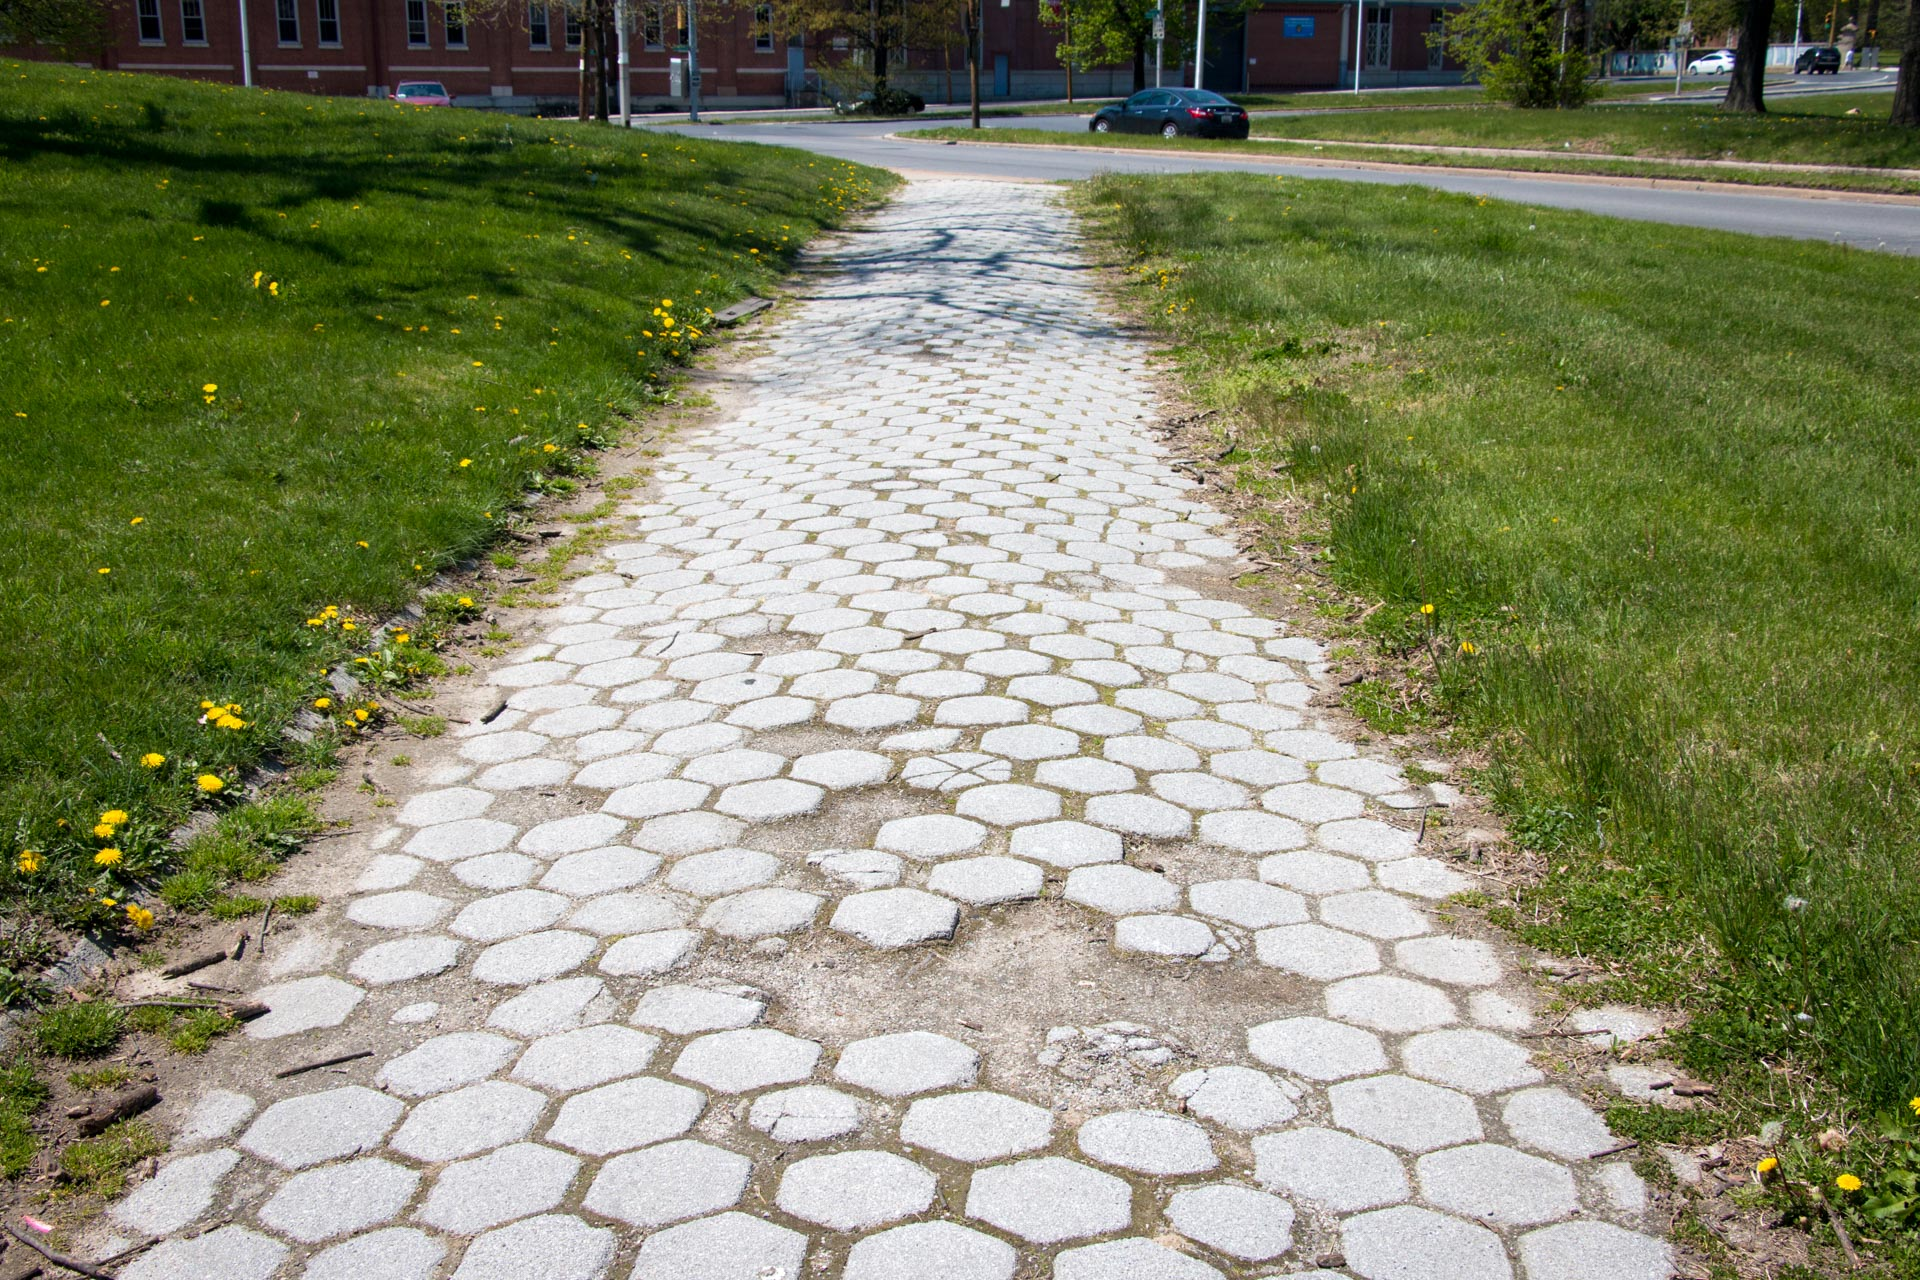 180501 Druid Hill Park pedestrian access conditions 07 historic sidewalk broken tiles